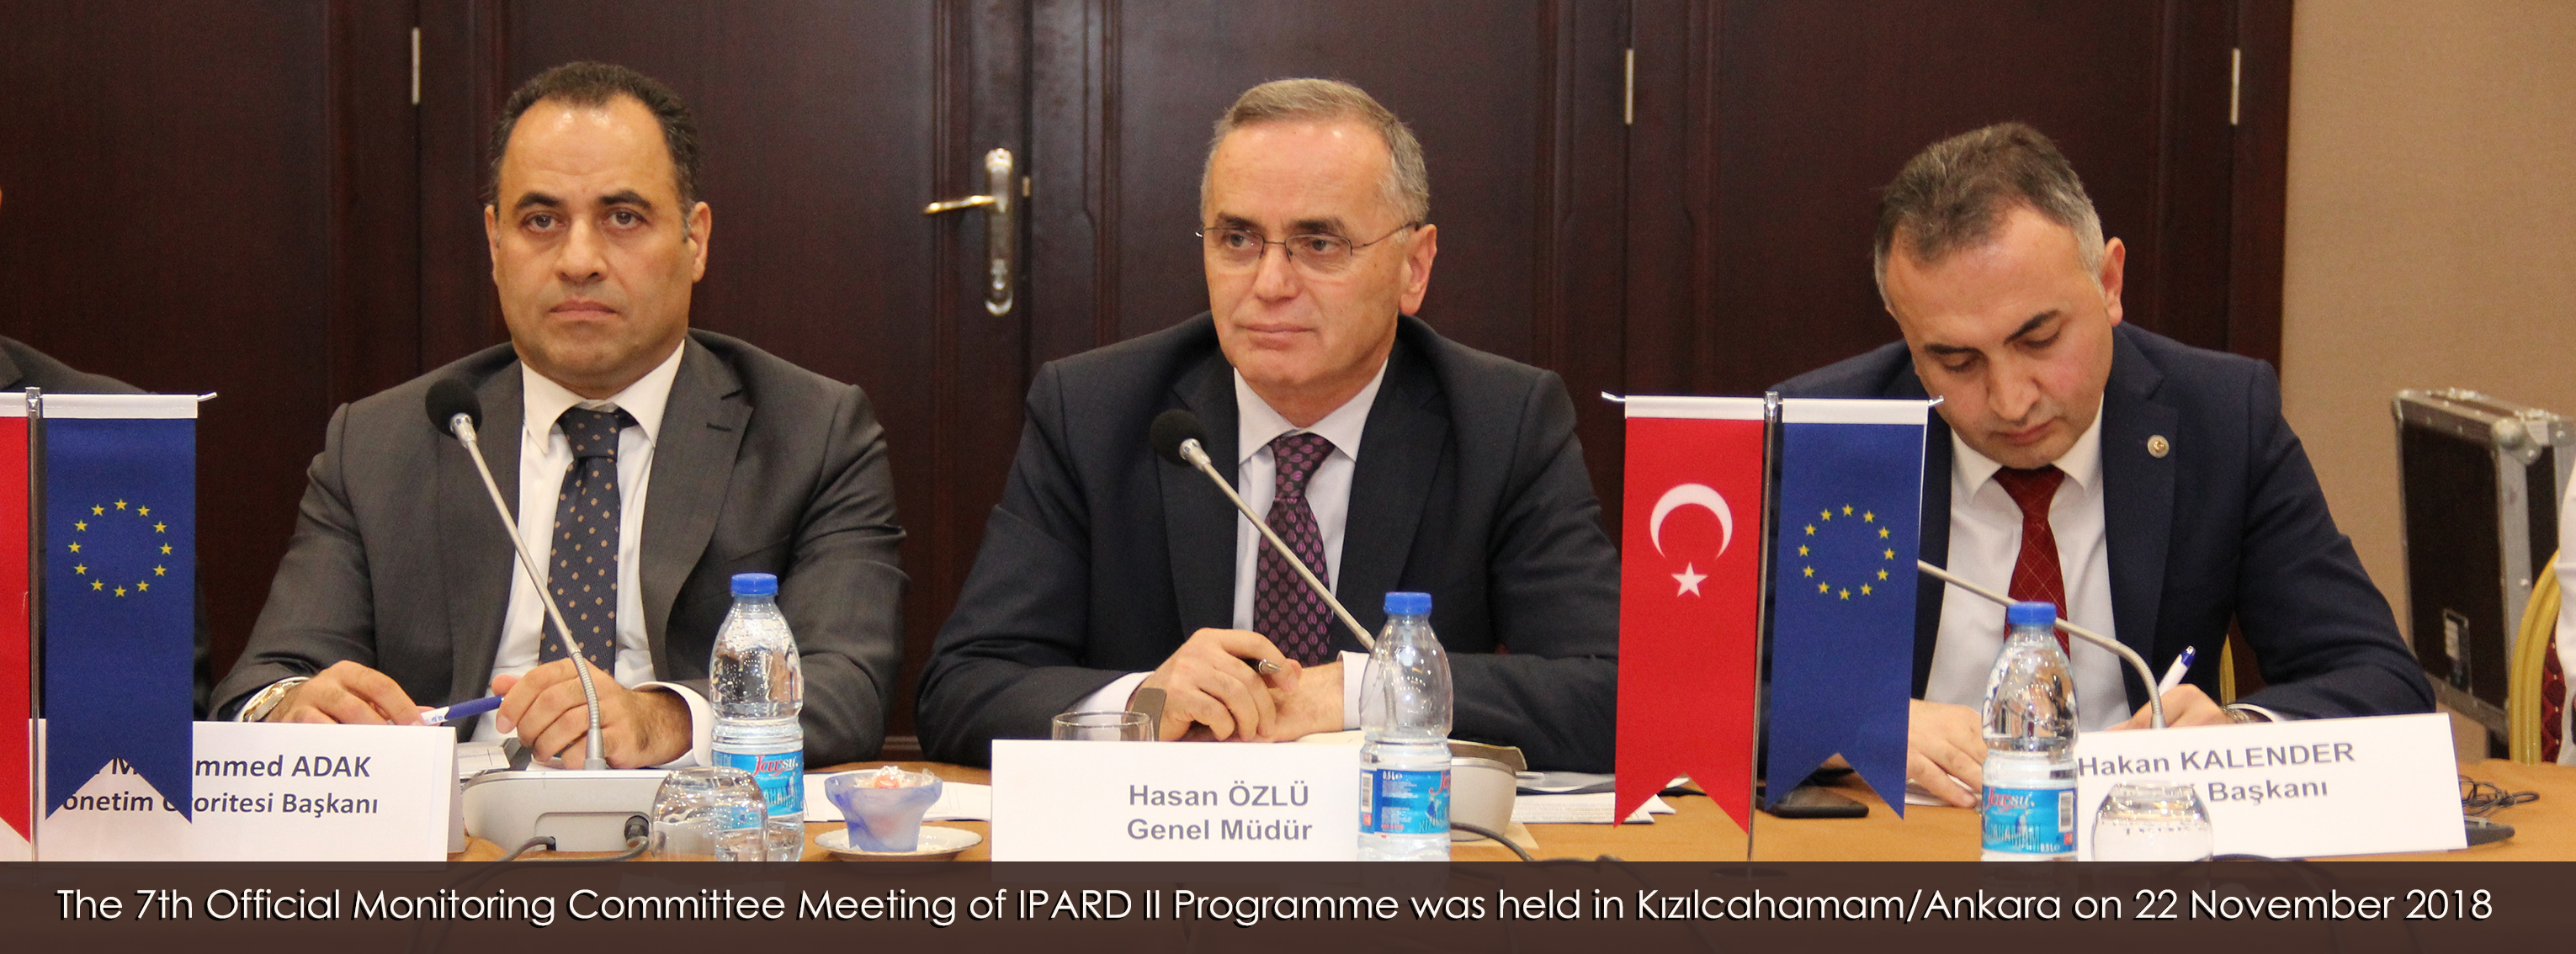 The 7th Official Monitoring Committee Meeting of IPARD II Programme  was held in Kızılcahamam/Ankara on 22 November 2018.